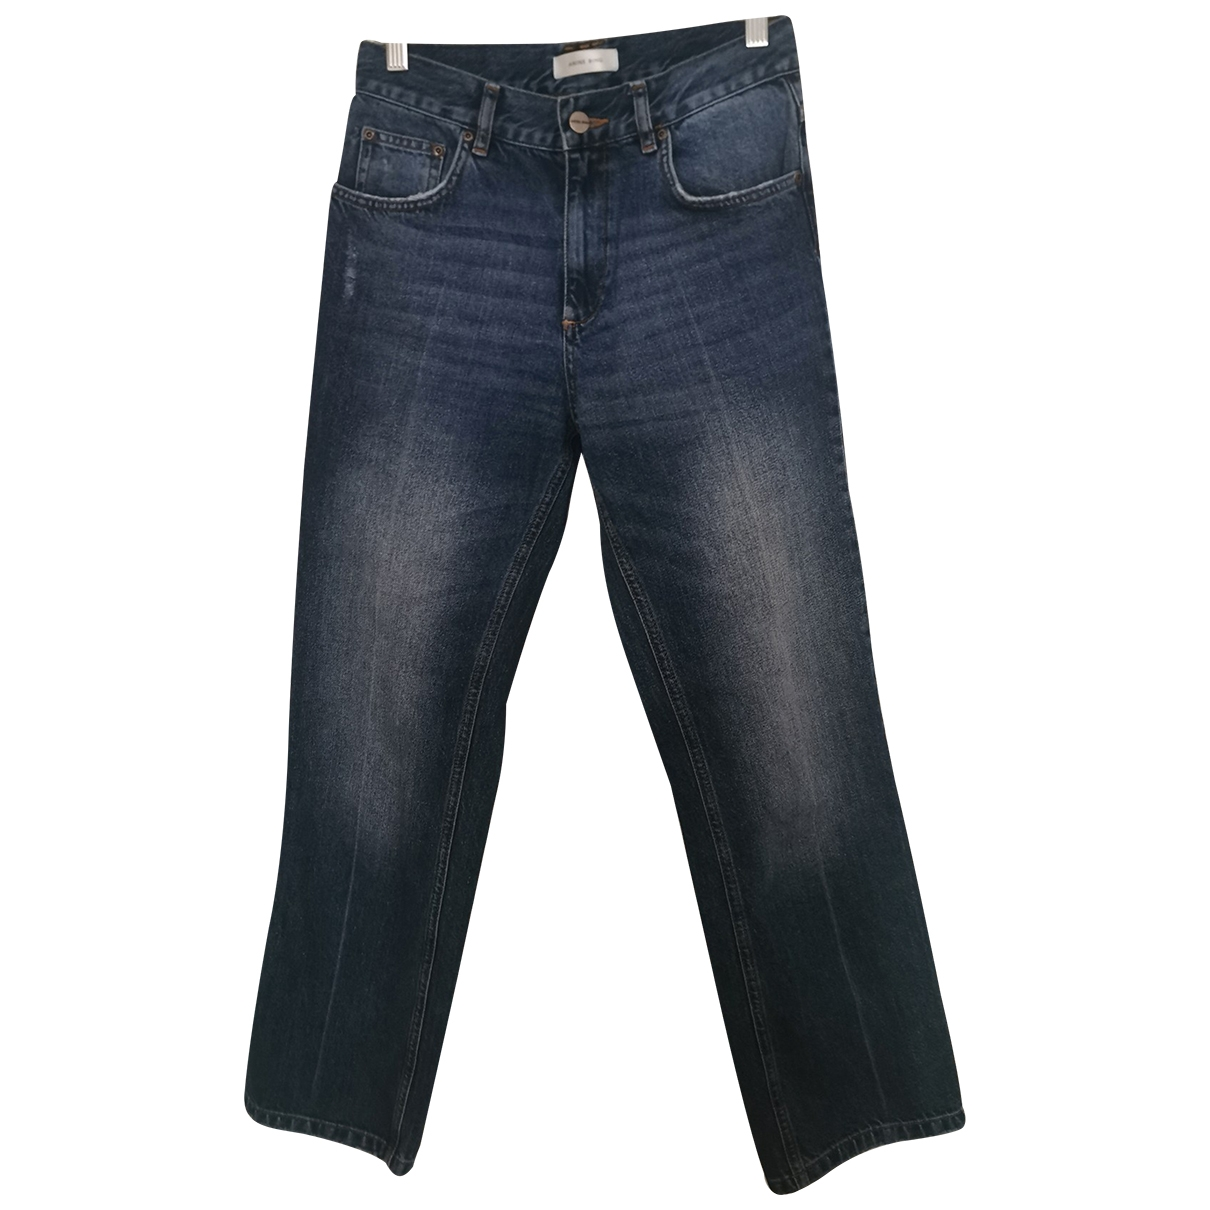 Anine Bing \N Blue Cotton Jeans for Women 26 US